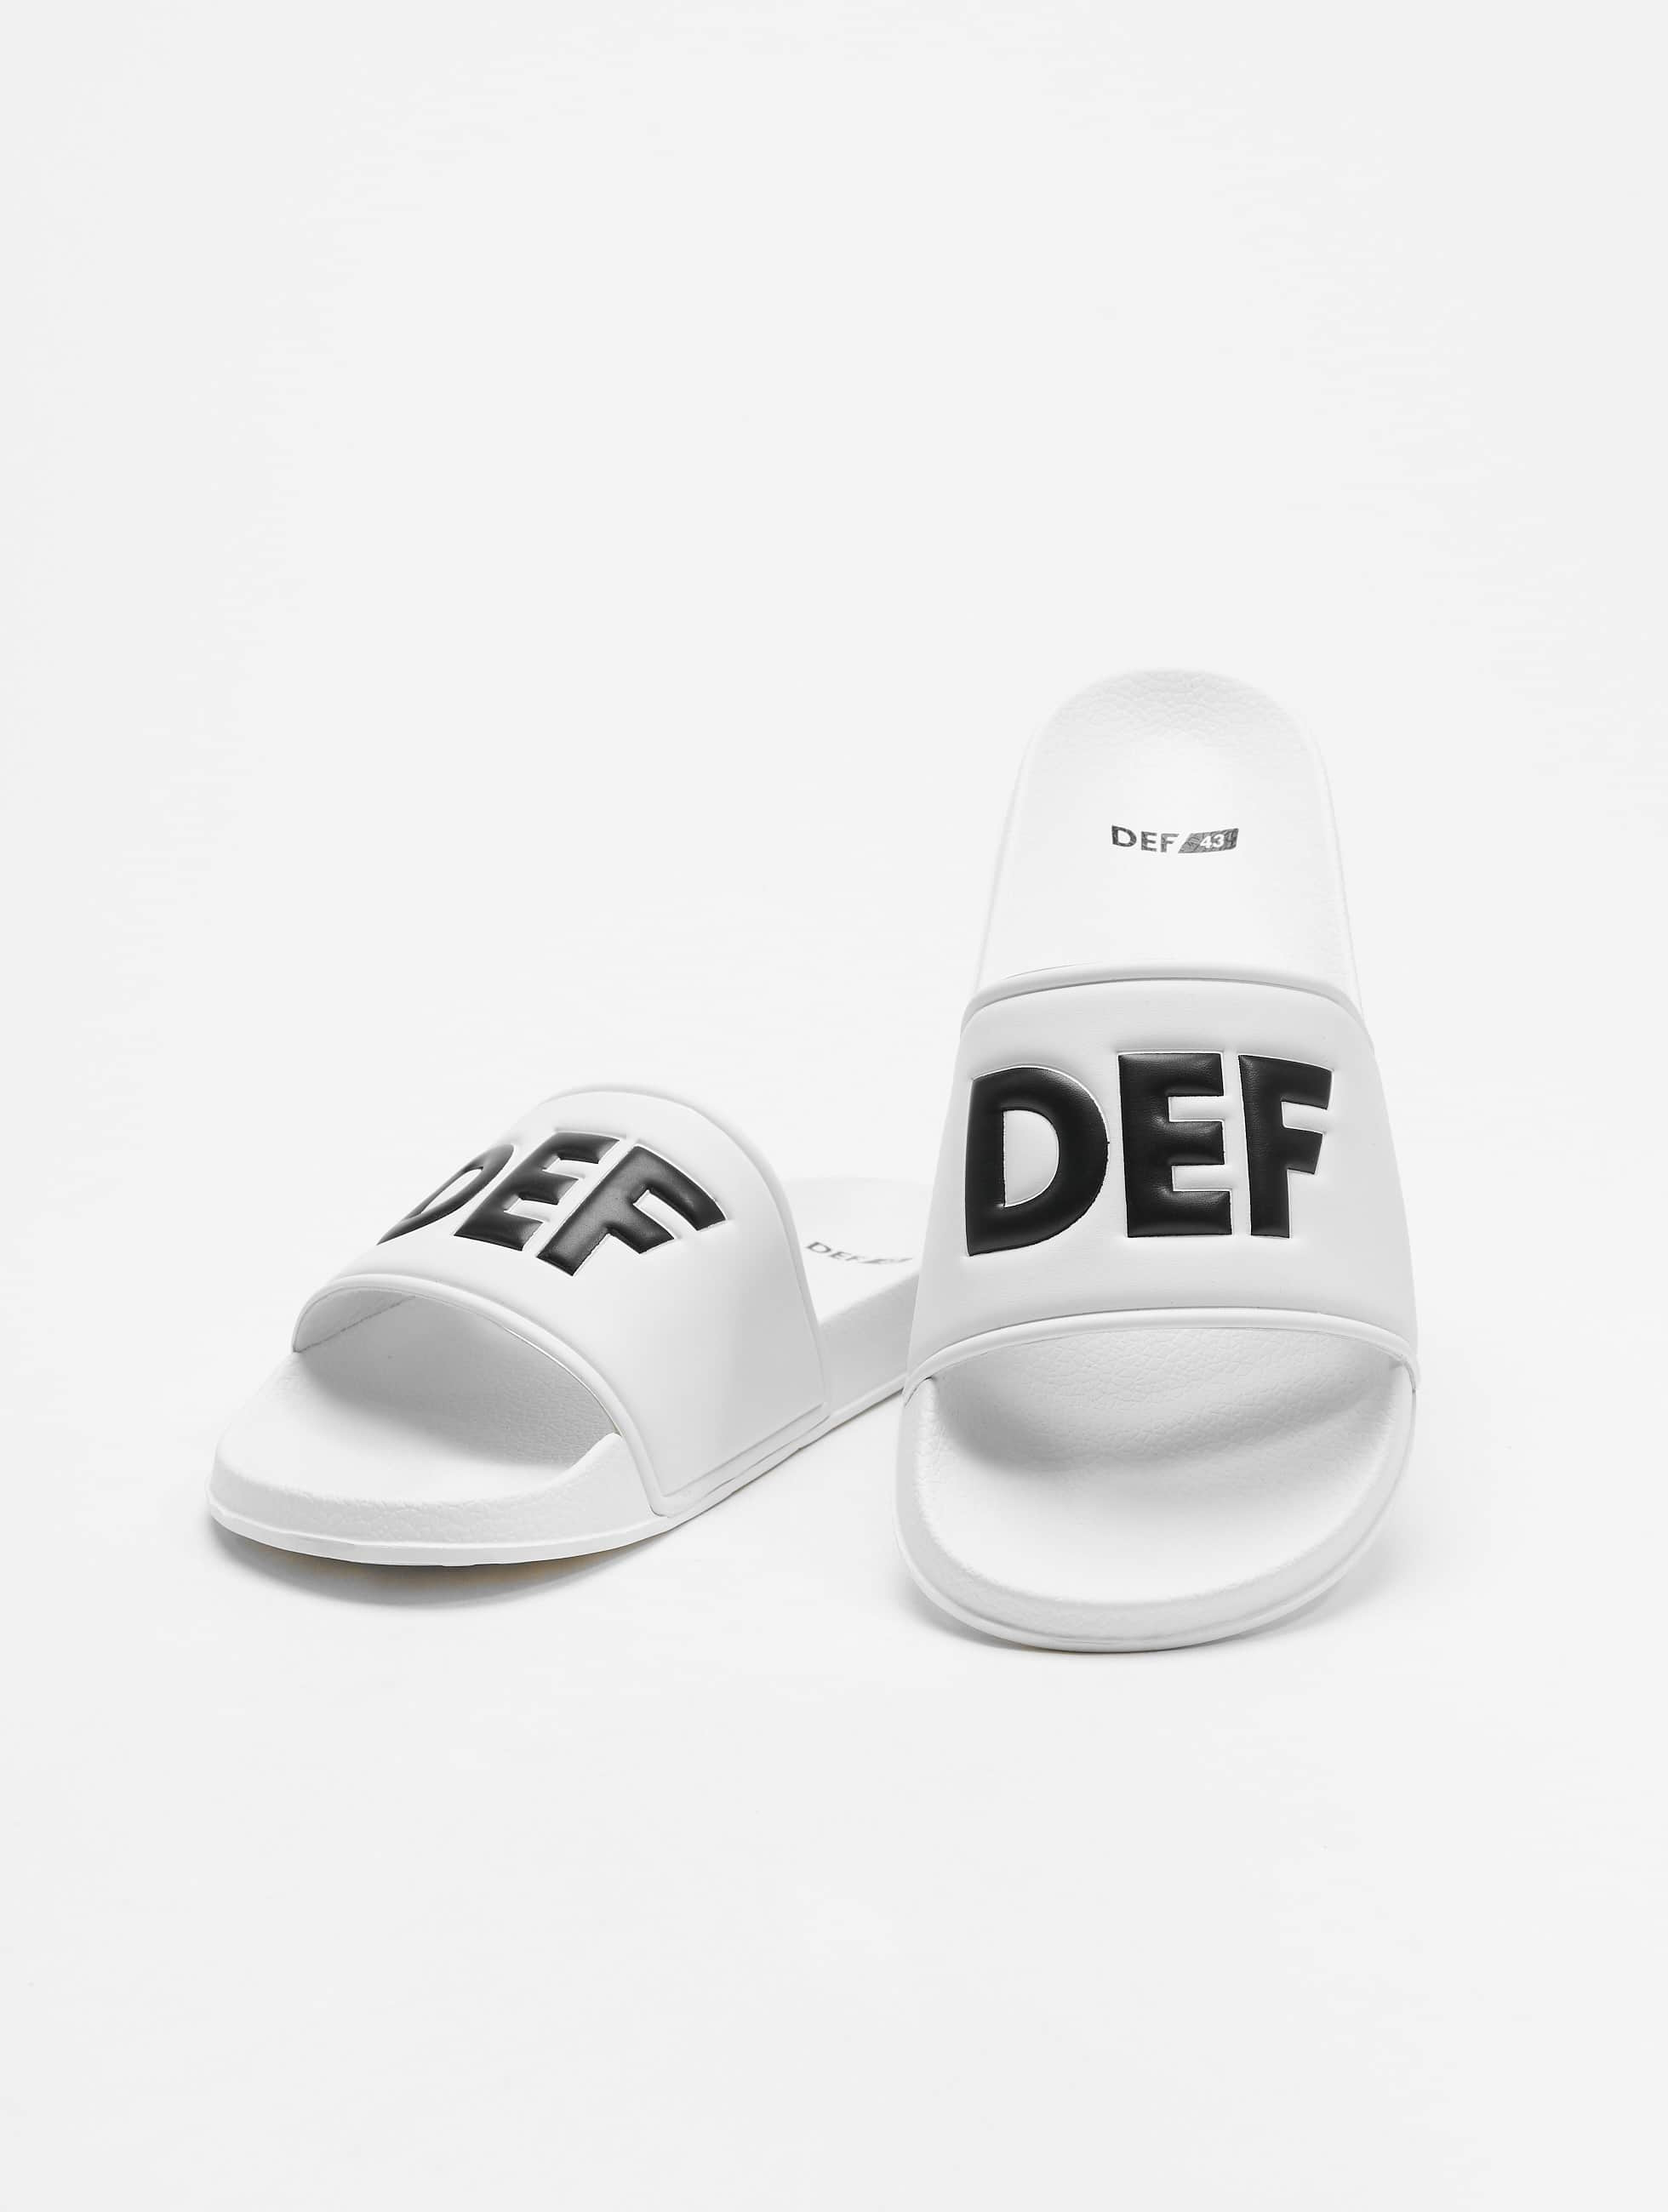 DEF / Sandals Defiletten in white 46